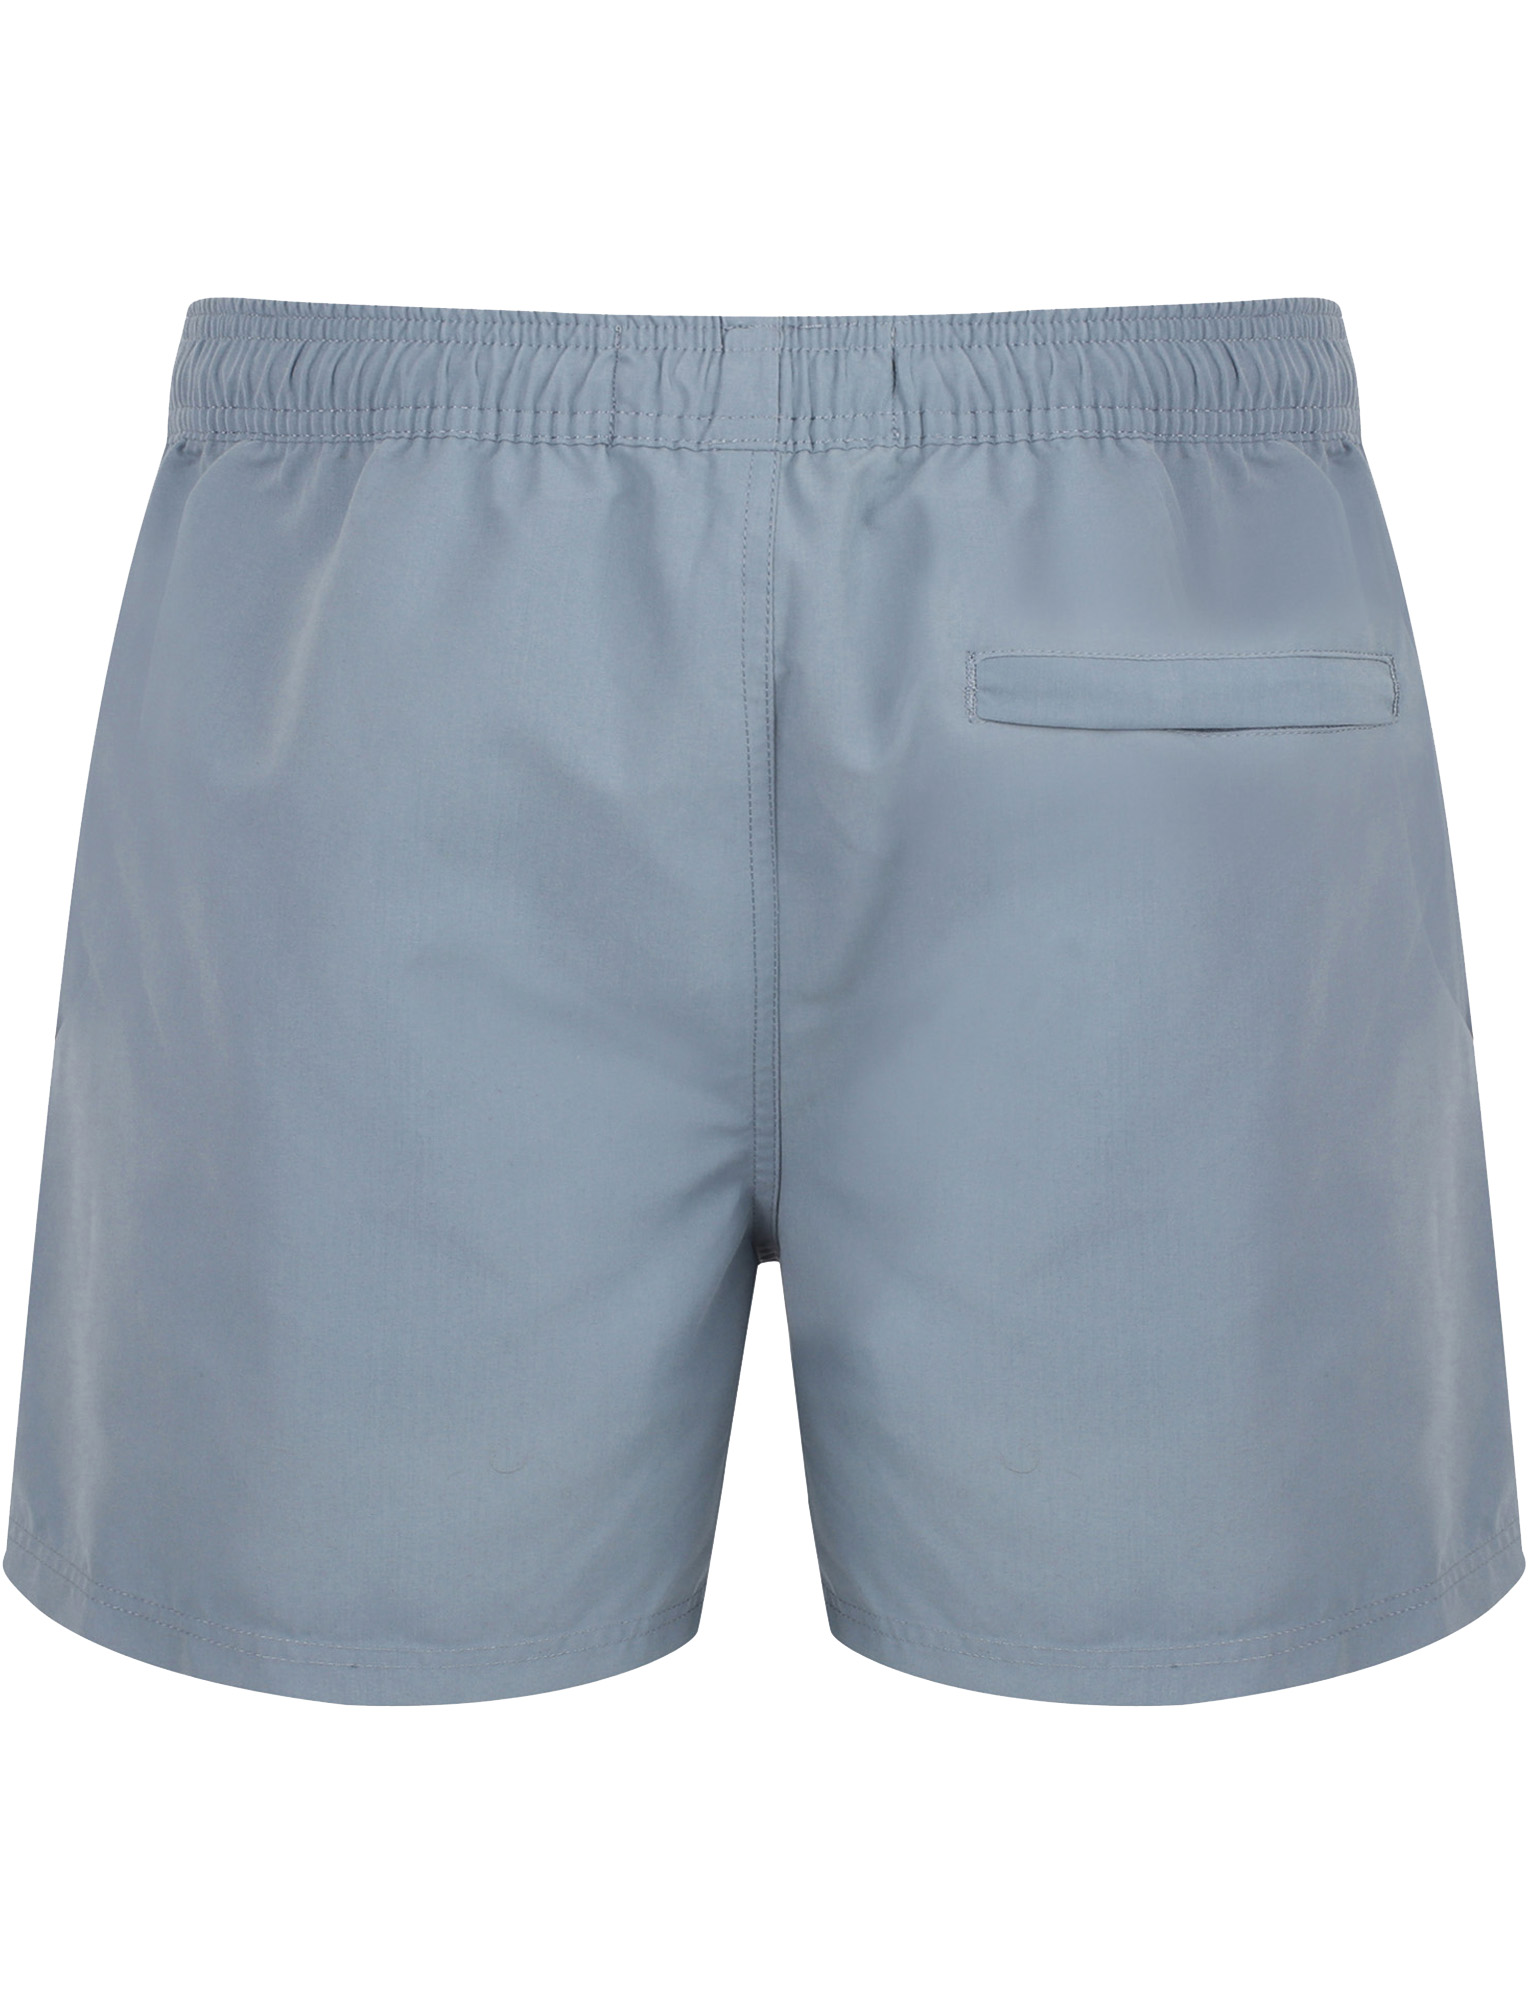 New-Mens-Tokyo-Laundry-Branded-Classic-Soft-Swim-Shorts-With-Pockets-Size-S-XXL thumbnail 5